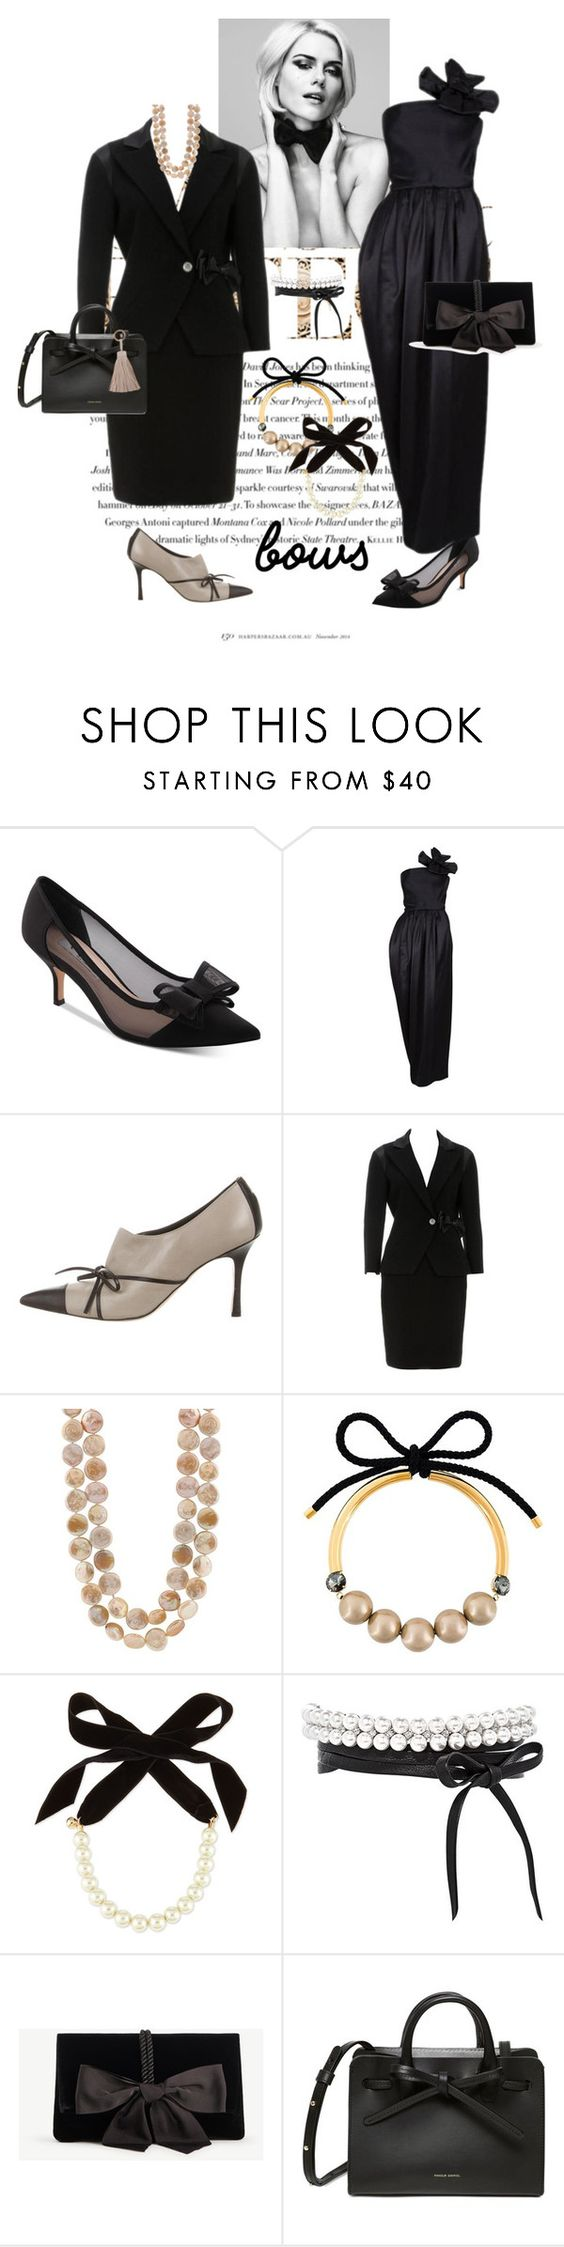 """""""#Bows"""" by wendycecille ❤ liked on Polyvore featuring Envi:, Nina, Manolo Blahnik, Chanel, Marni, Lulu Frost, Fallon, Ann Taylor and Humble Chic"""